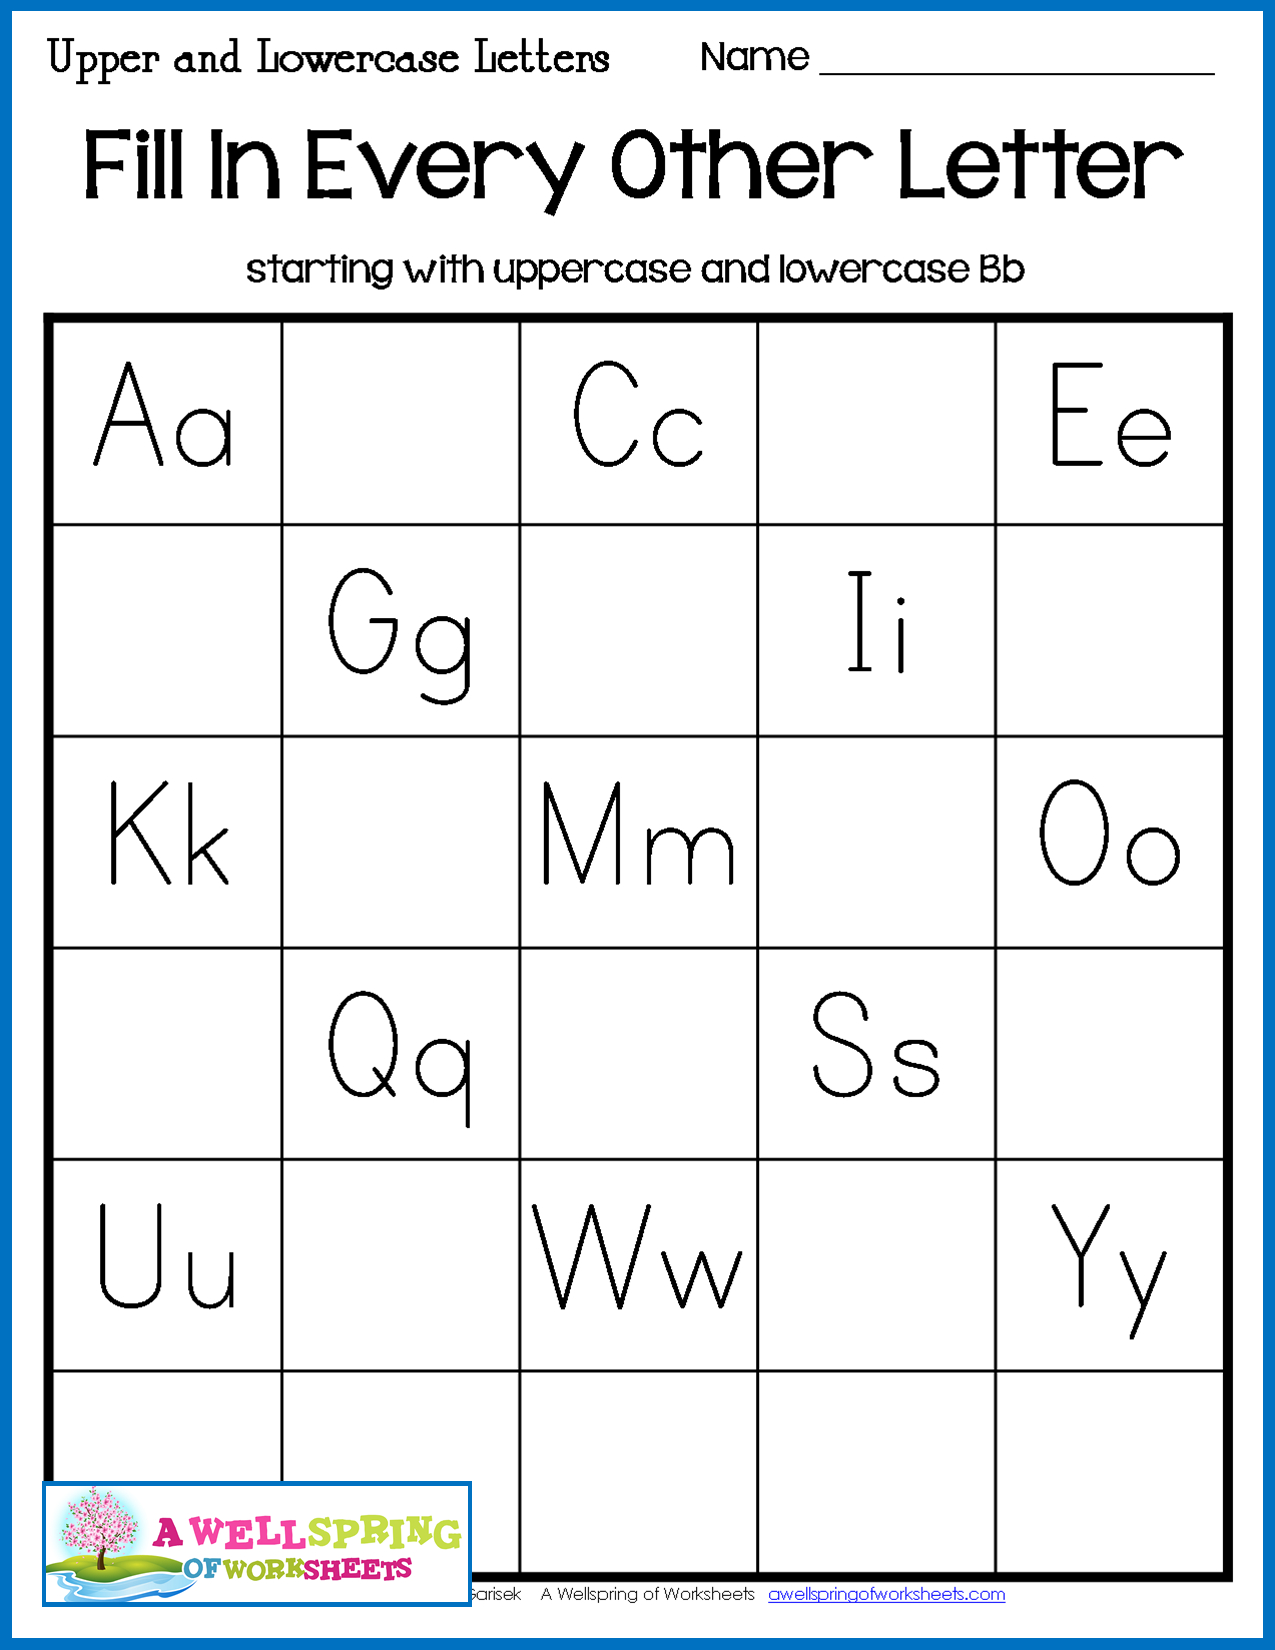 Alphabet Worksheets Fill In The Missing Letter